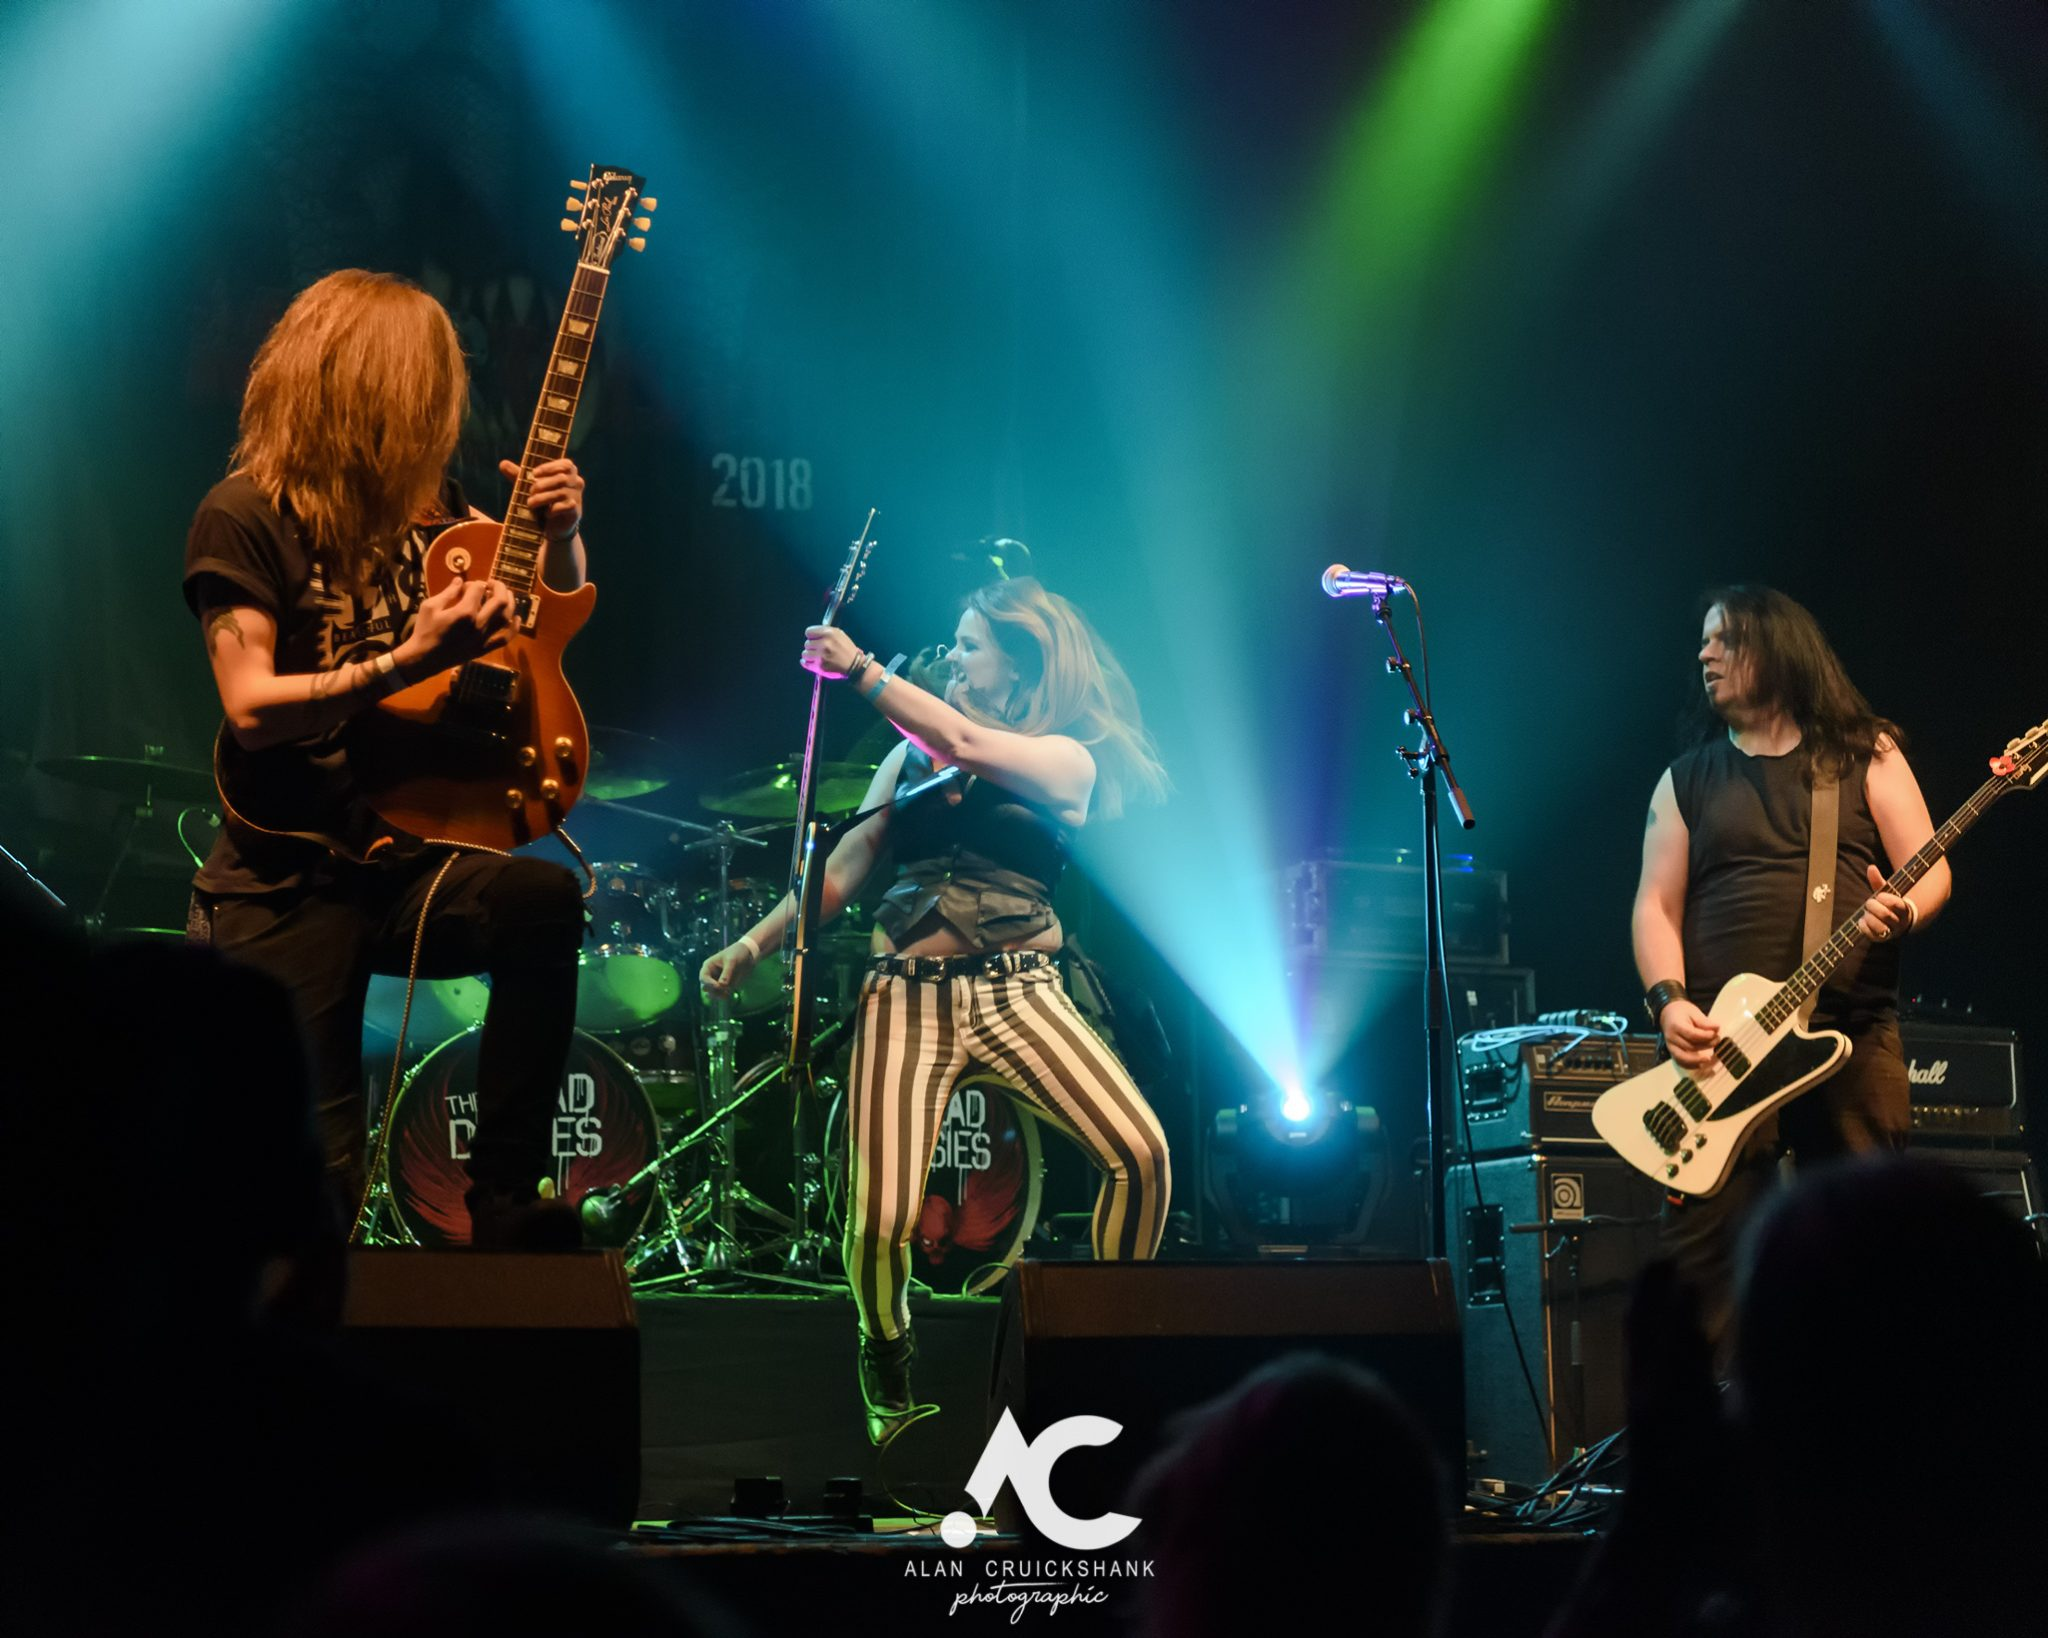 Beth Blade and the Beautiful Disasters at Monstersfest 2018 Ironworks Inverness November 2018 4 - Monstersfest 2018 - IMAGES